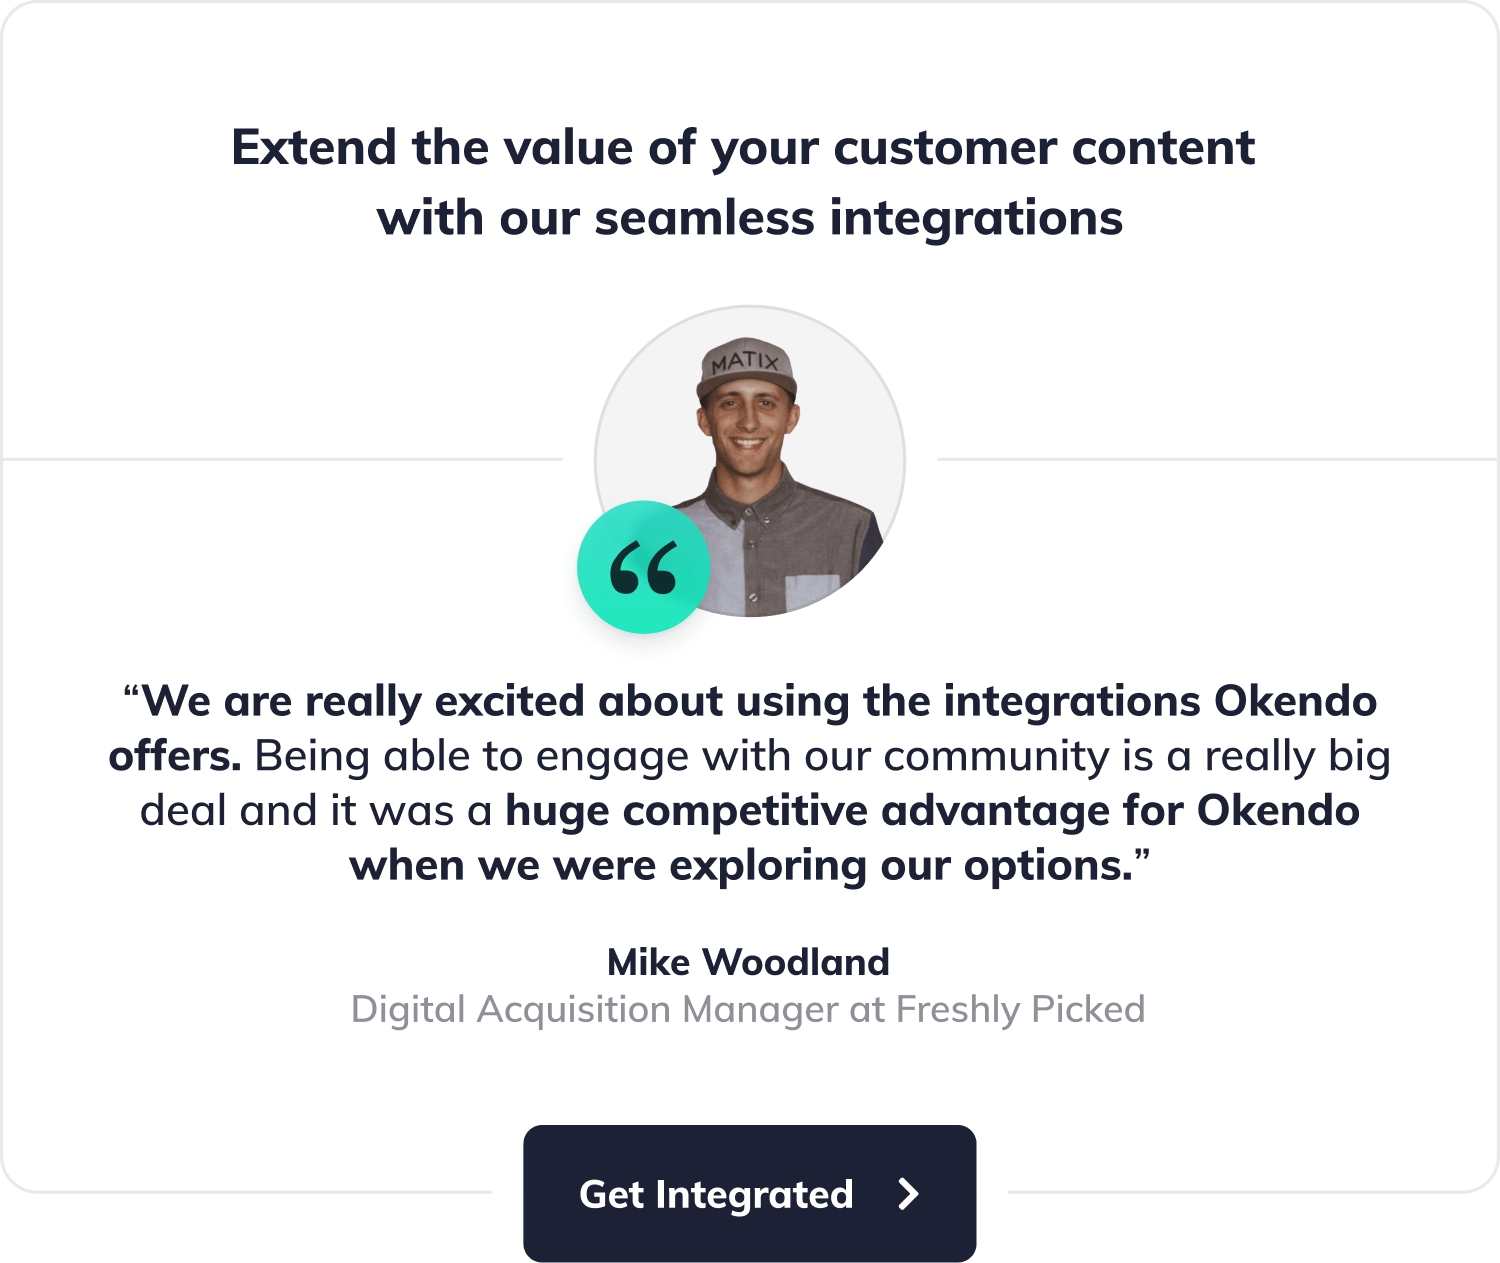 """Extend the value of your customer content with our seamless integrations. """"We are really excited about using the integrations Okendo offers. Being able to engage with our community is a really big deal and it was a huge competitive advantage for Okendo when we were exploring our options."""", says Mike Woodland, Digital Acquisition Manager at Freshly Picked. Button with label"""